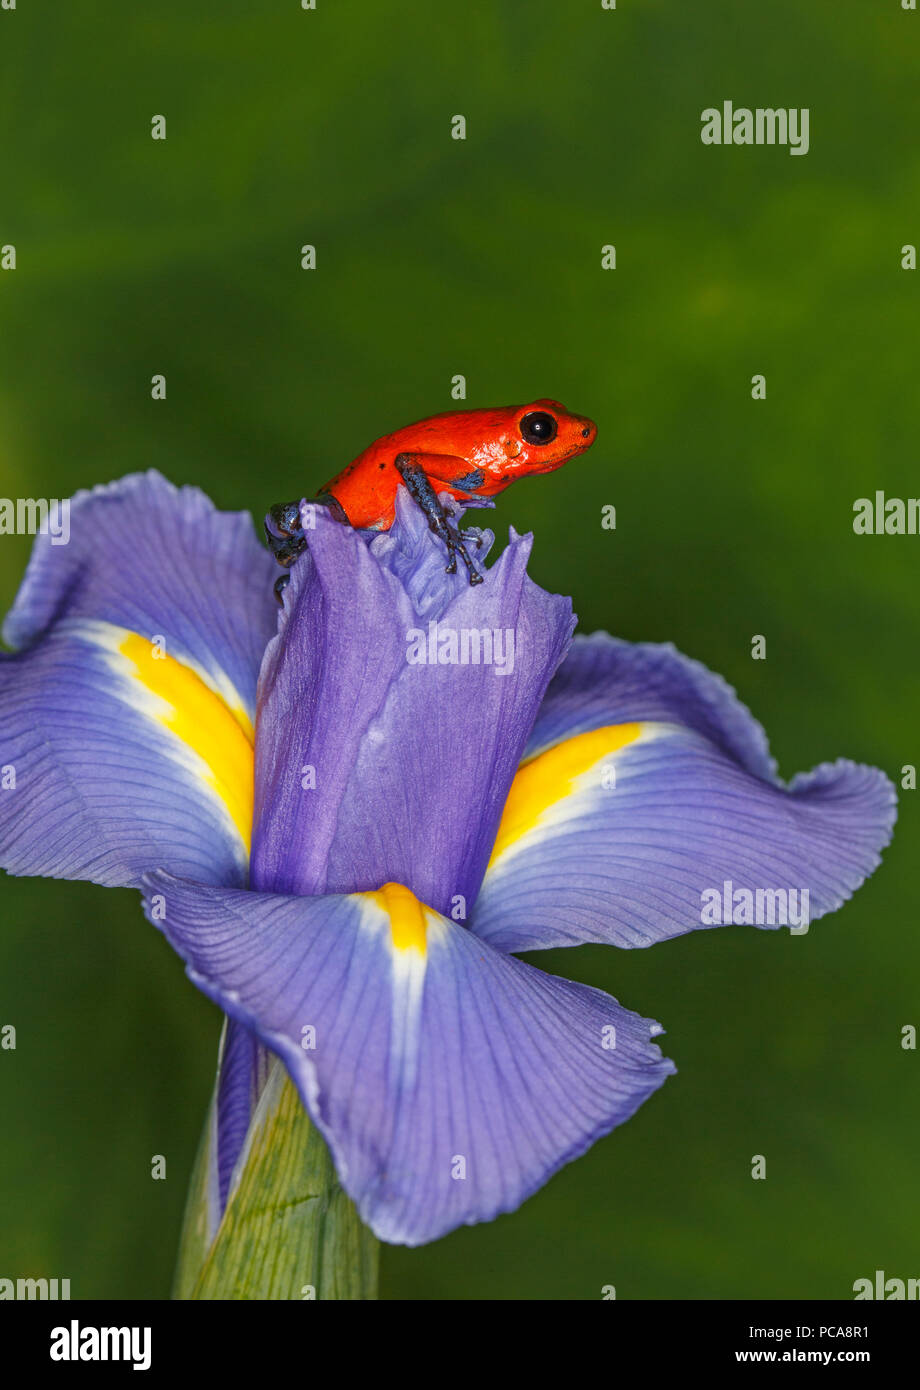 Nicaragua blue jean dart frog or Pumilio dart frog (Oophaga pumilio) on an iris - Stock Image